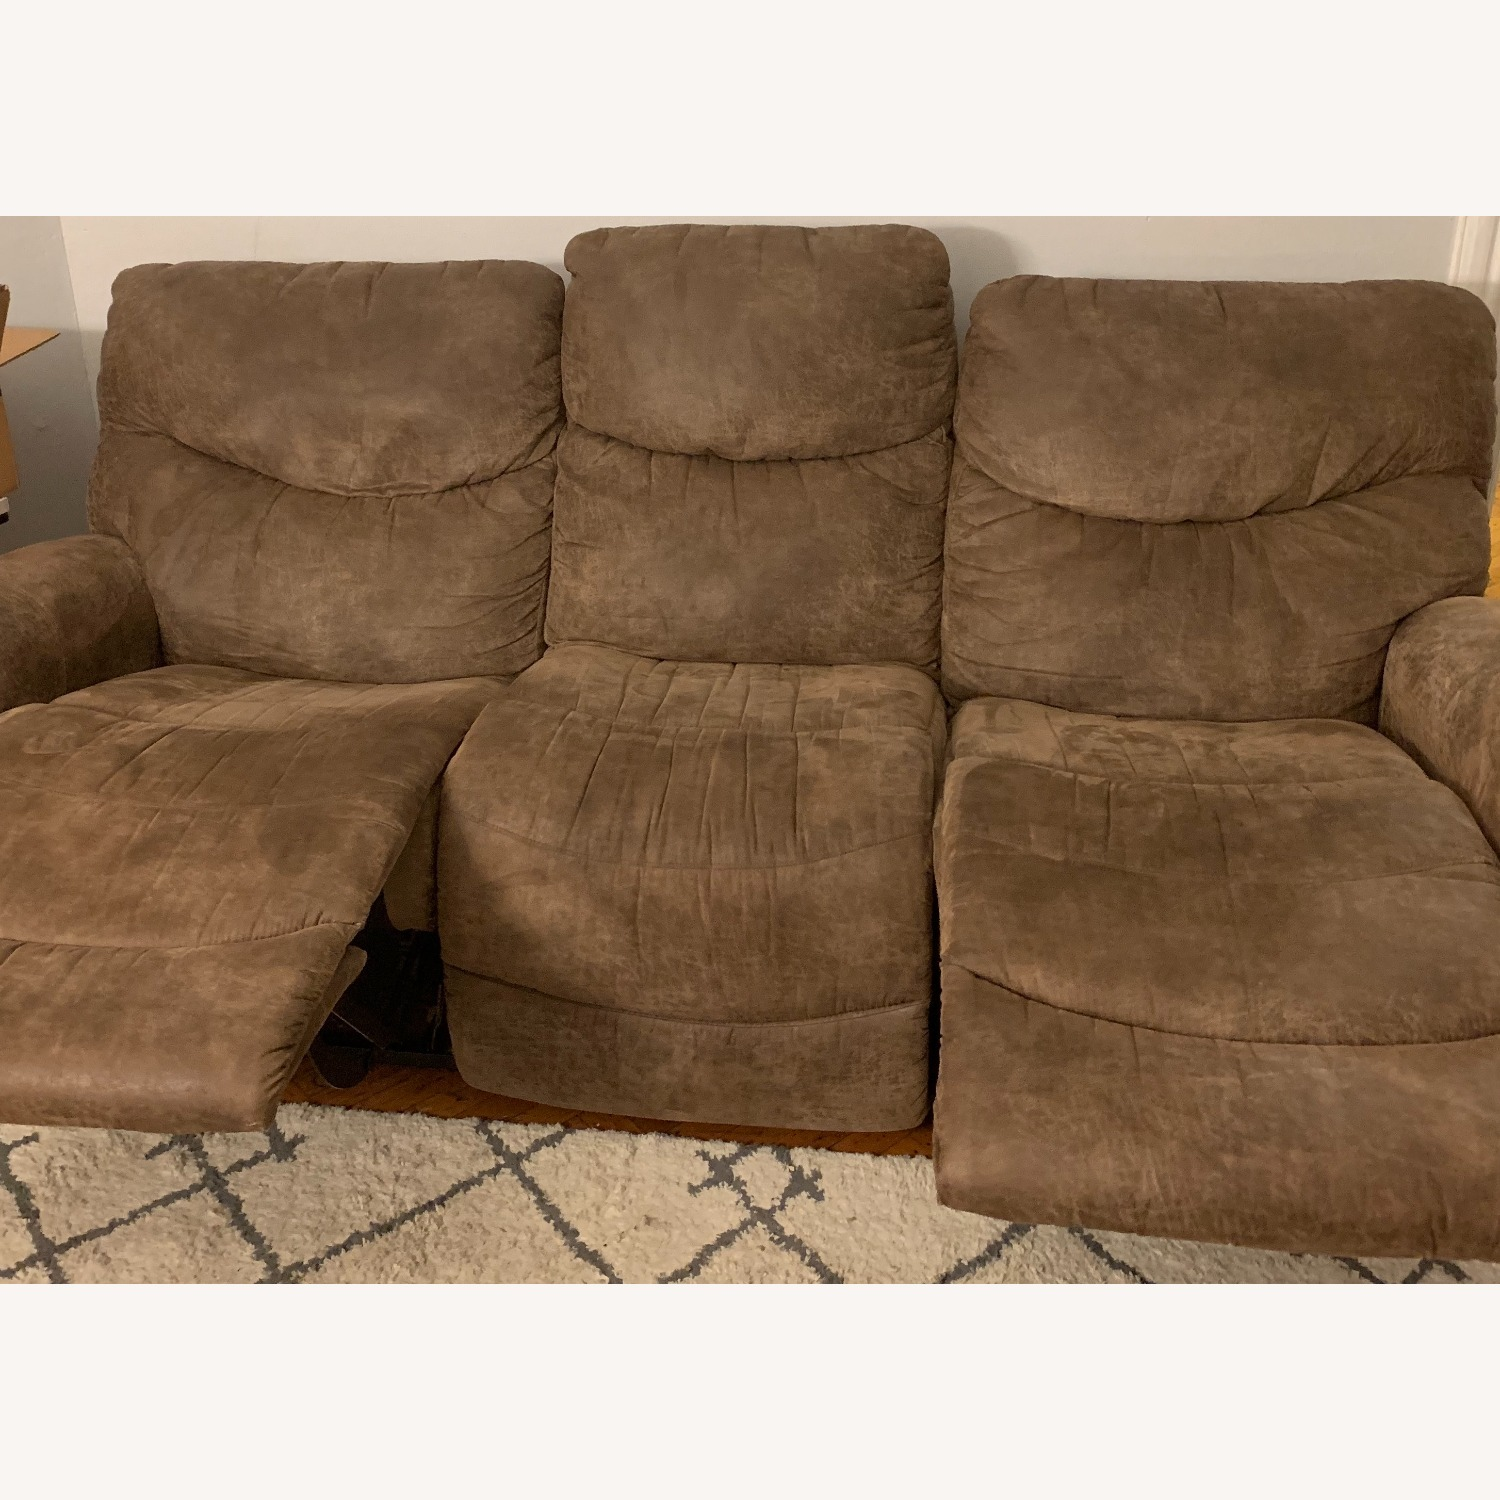 La-Z-Boy Ddual Reclining Couch - brown - image-4